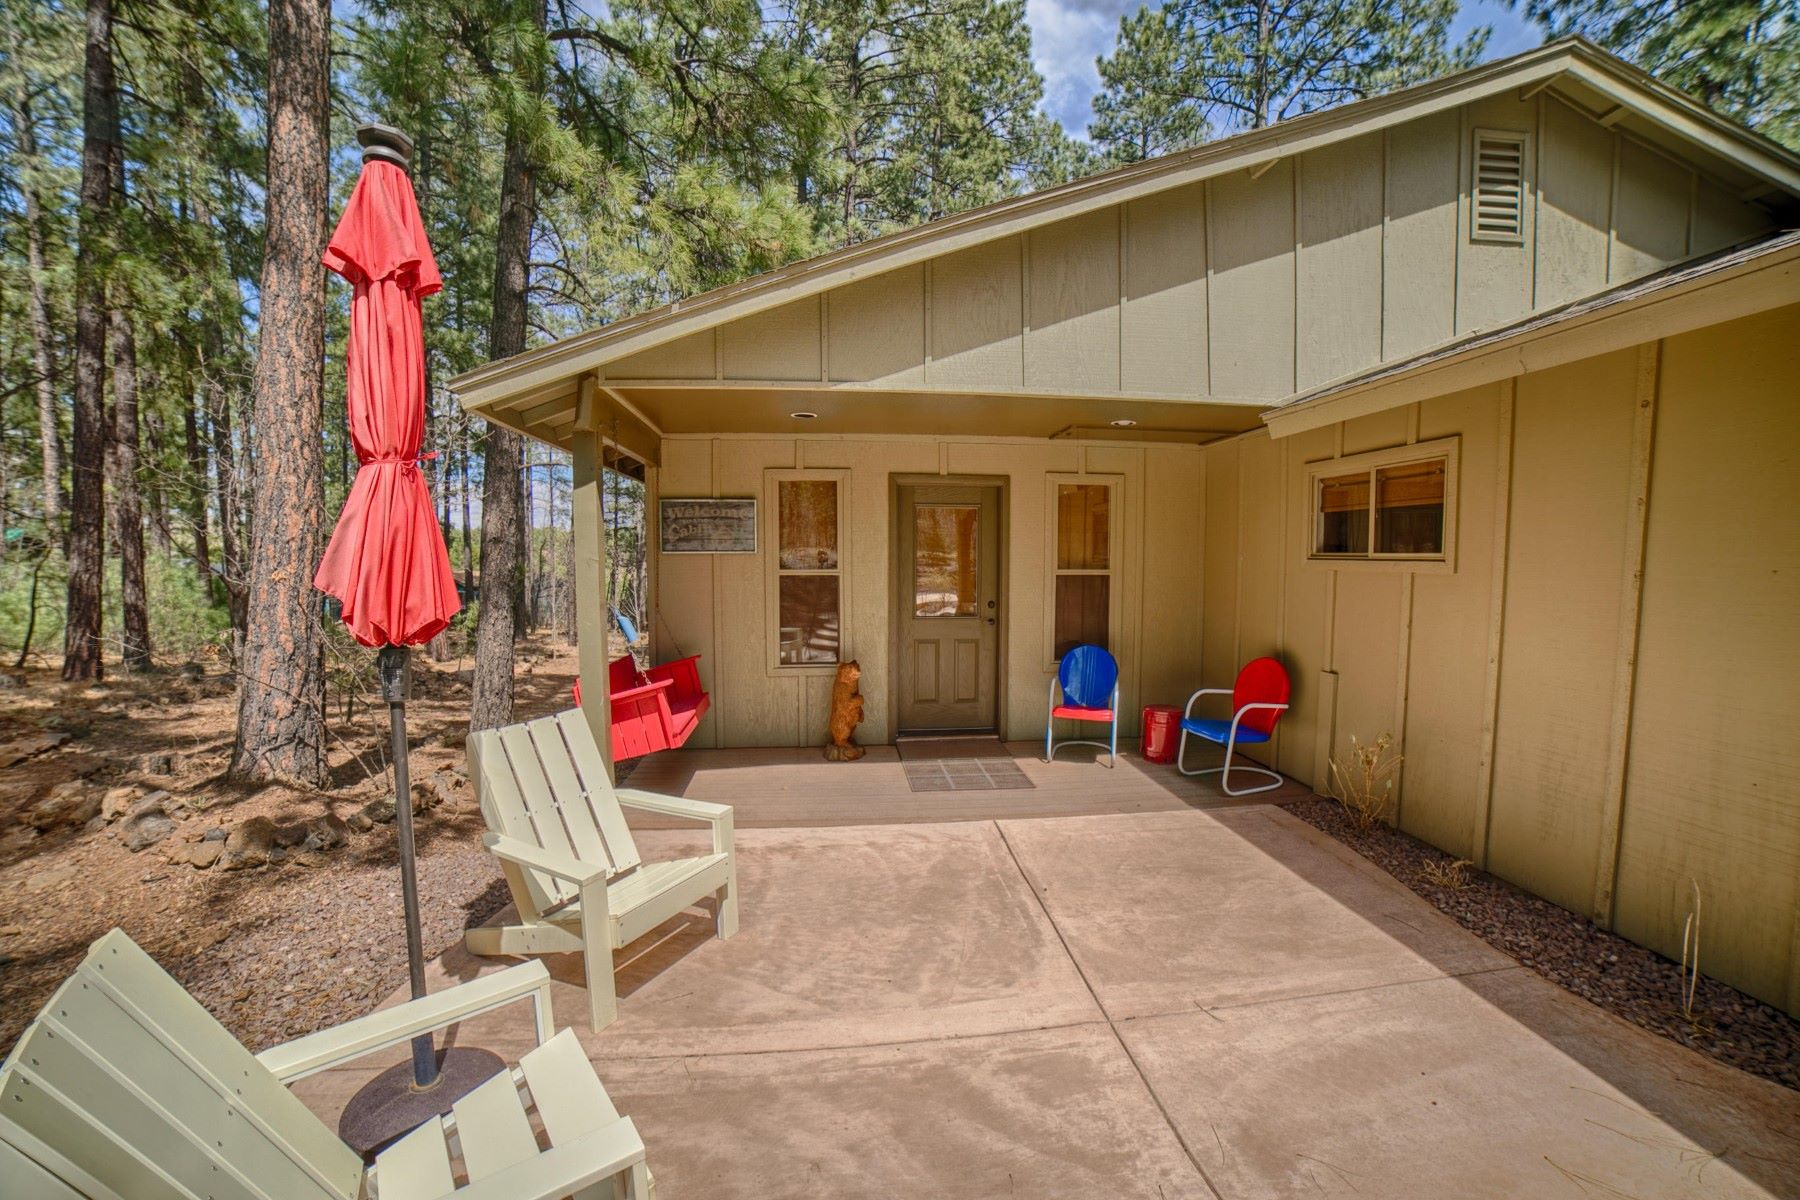 single family homes for Active at White Mountain Summer Homes 2076 Jack Rabbit Dr Pinetop, Arizona 85935 United States